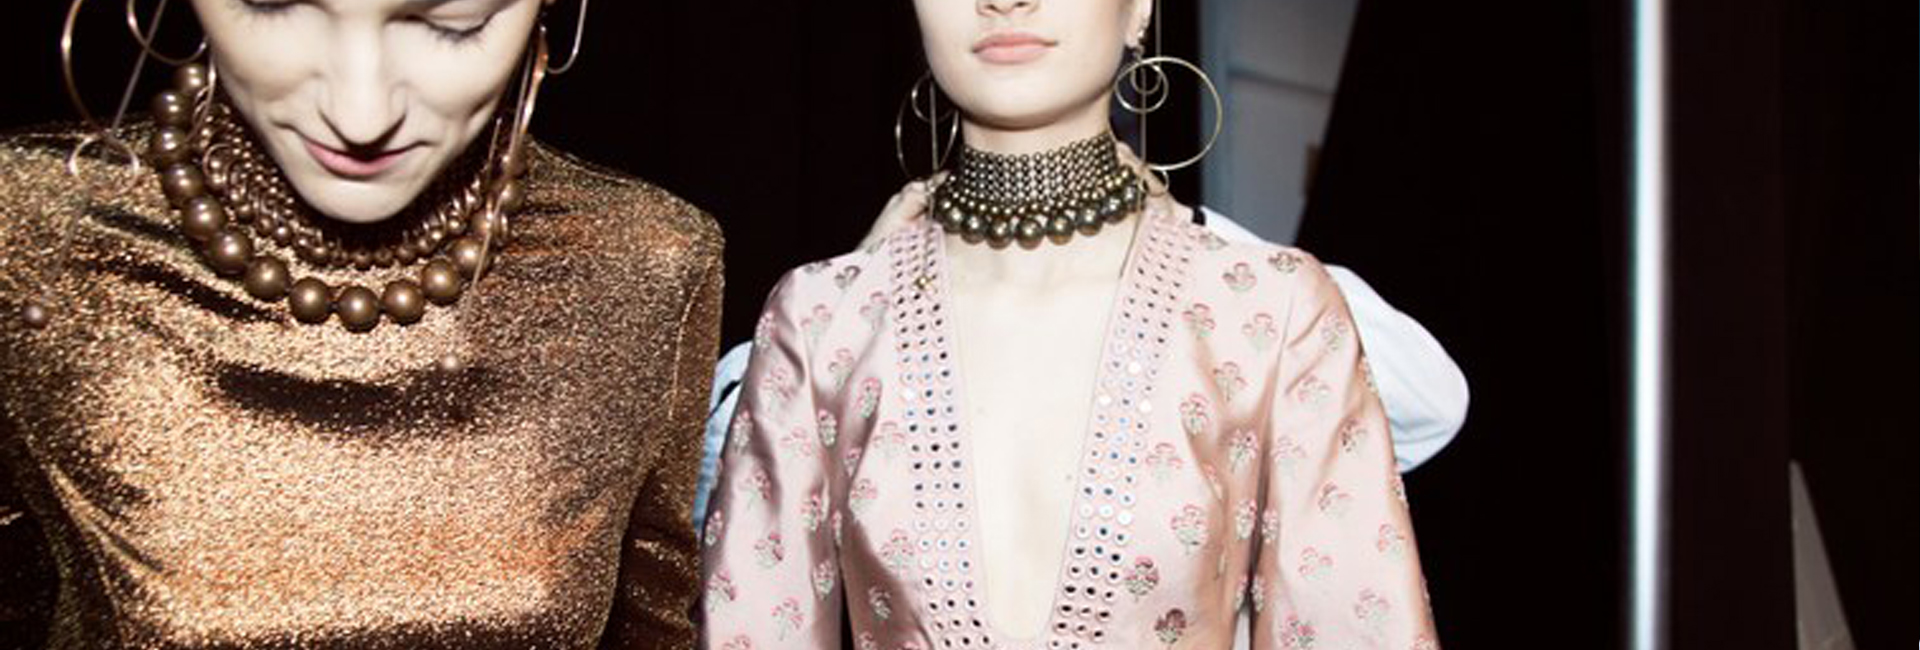 ZIMMERMANN BACKSTAGE, WHERE CAN I BUY A COOL CHOKER FROM, STATEMENT CHOKERS EDIT BUY ONLINE